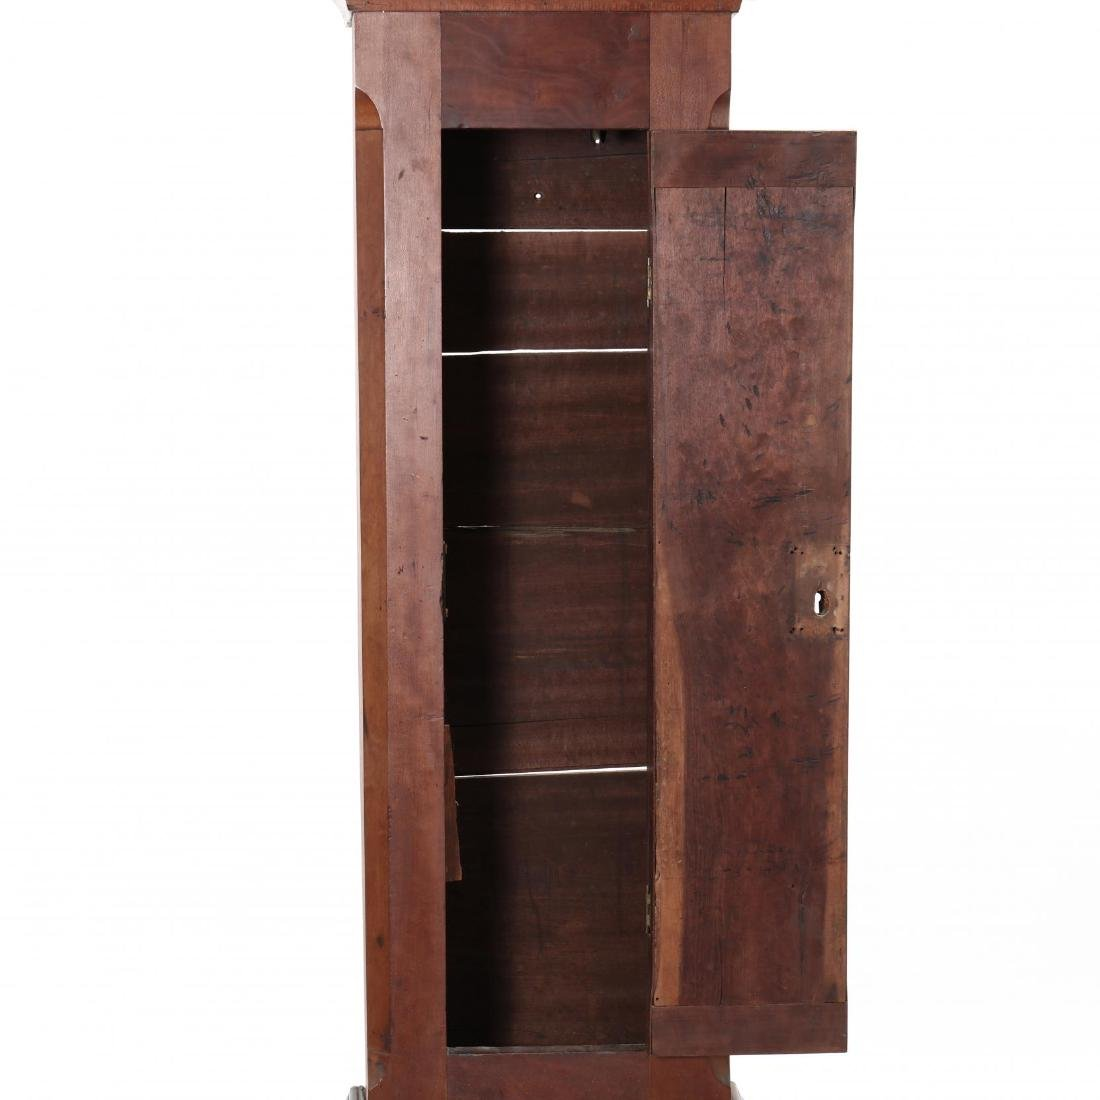 Southern Federal Tall Case Cherry Clock - 5